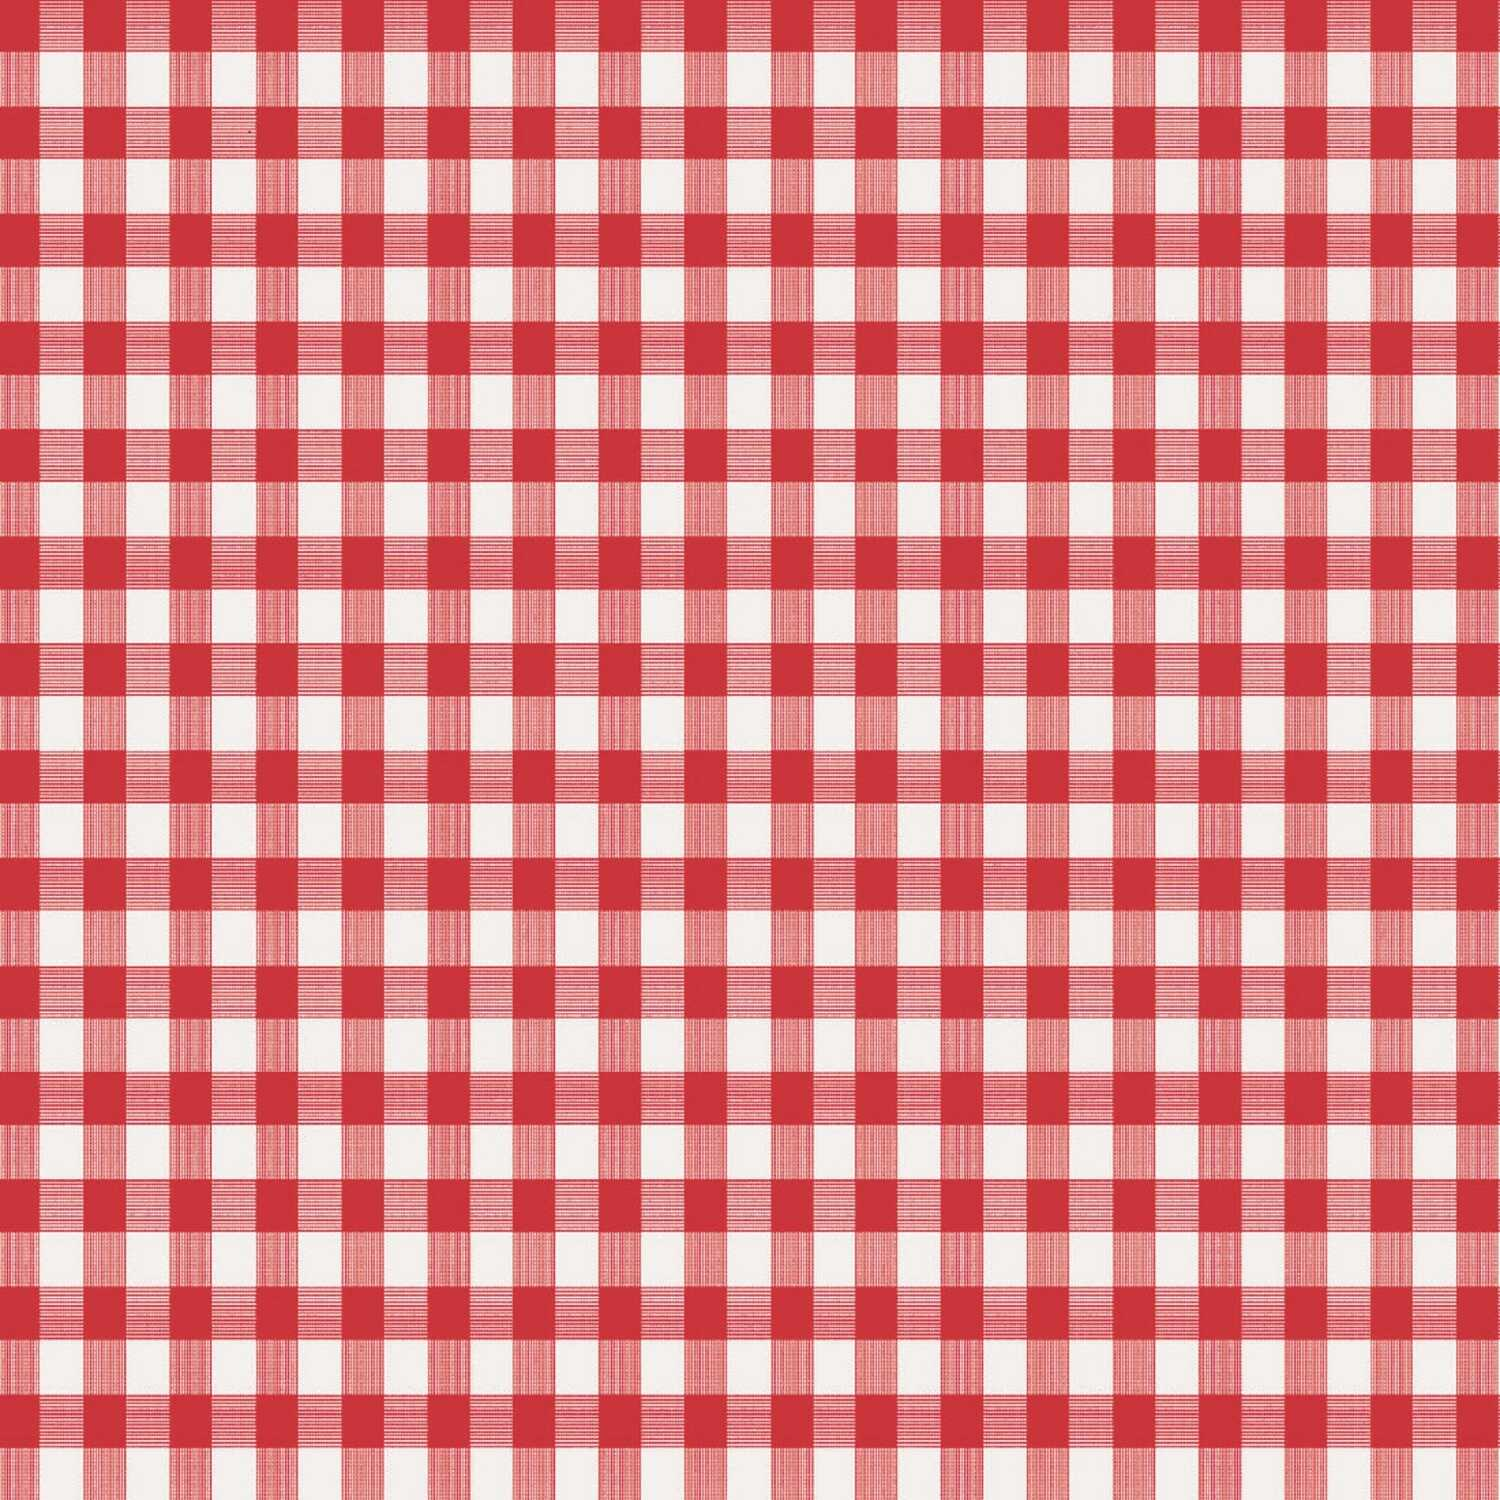 Magic Cover  52 in. W x 90 in. L Red/White Checkered  Plastic  Tablecloth